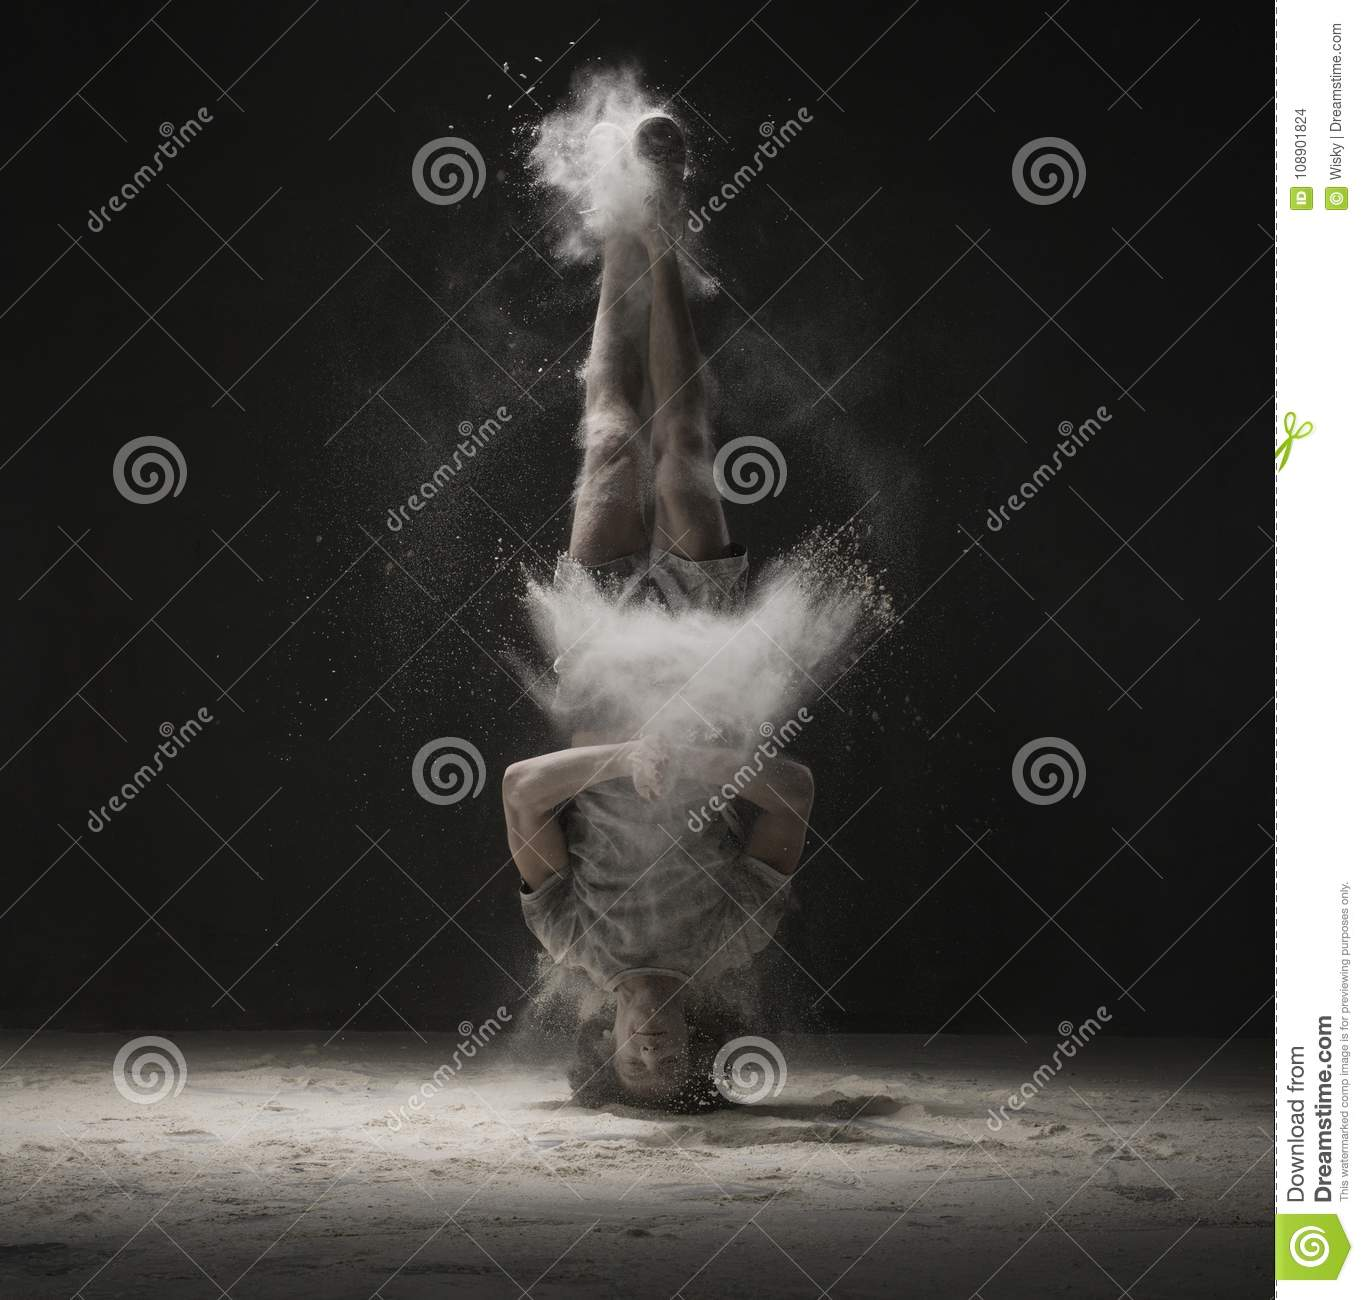 Download Young Dancer Doing A Headstand In Dust Cloud View Stock Photo - Image of elastic, dancer: 108901824